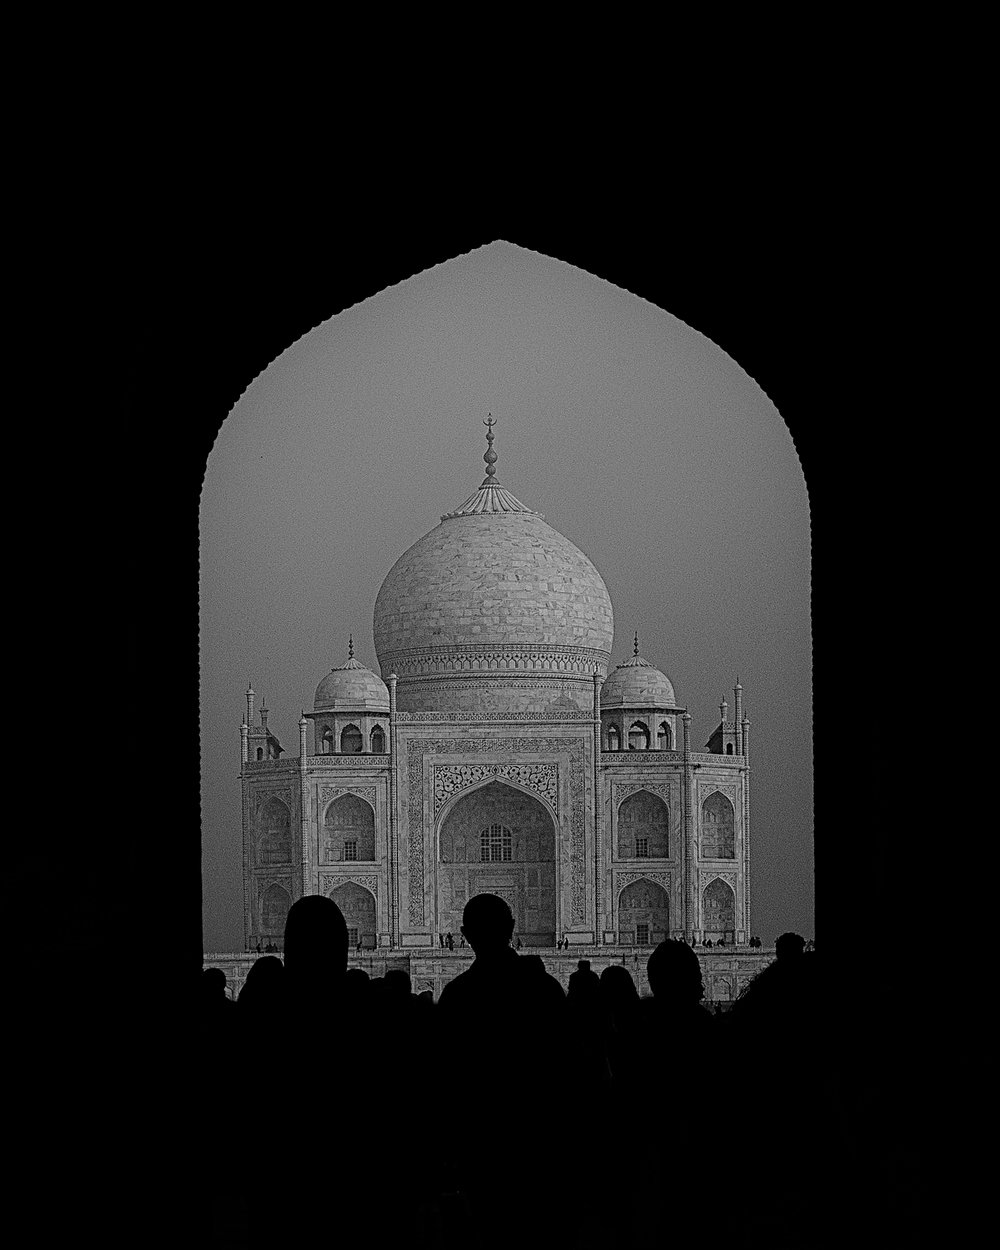 Entry Gate, Taj Mahal, Agra